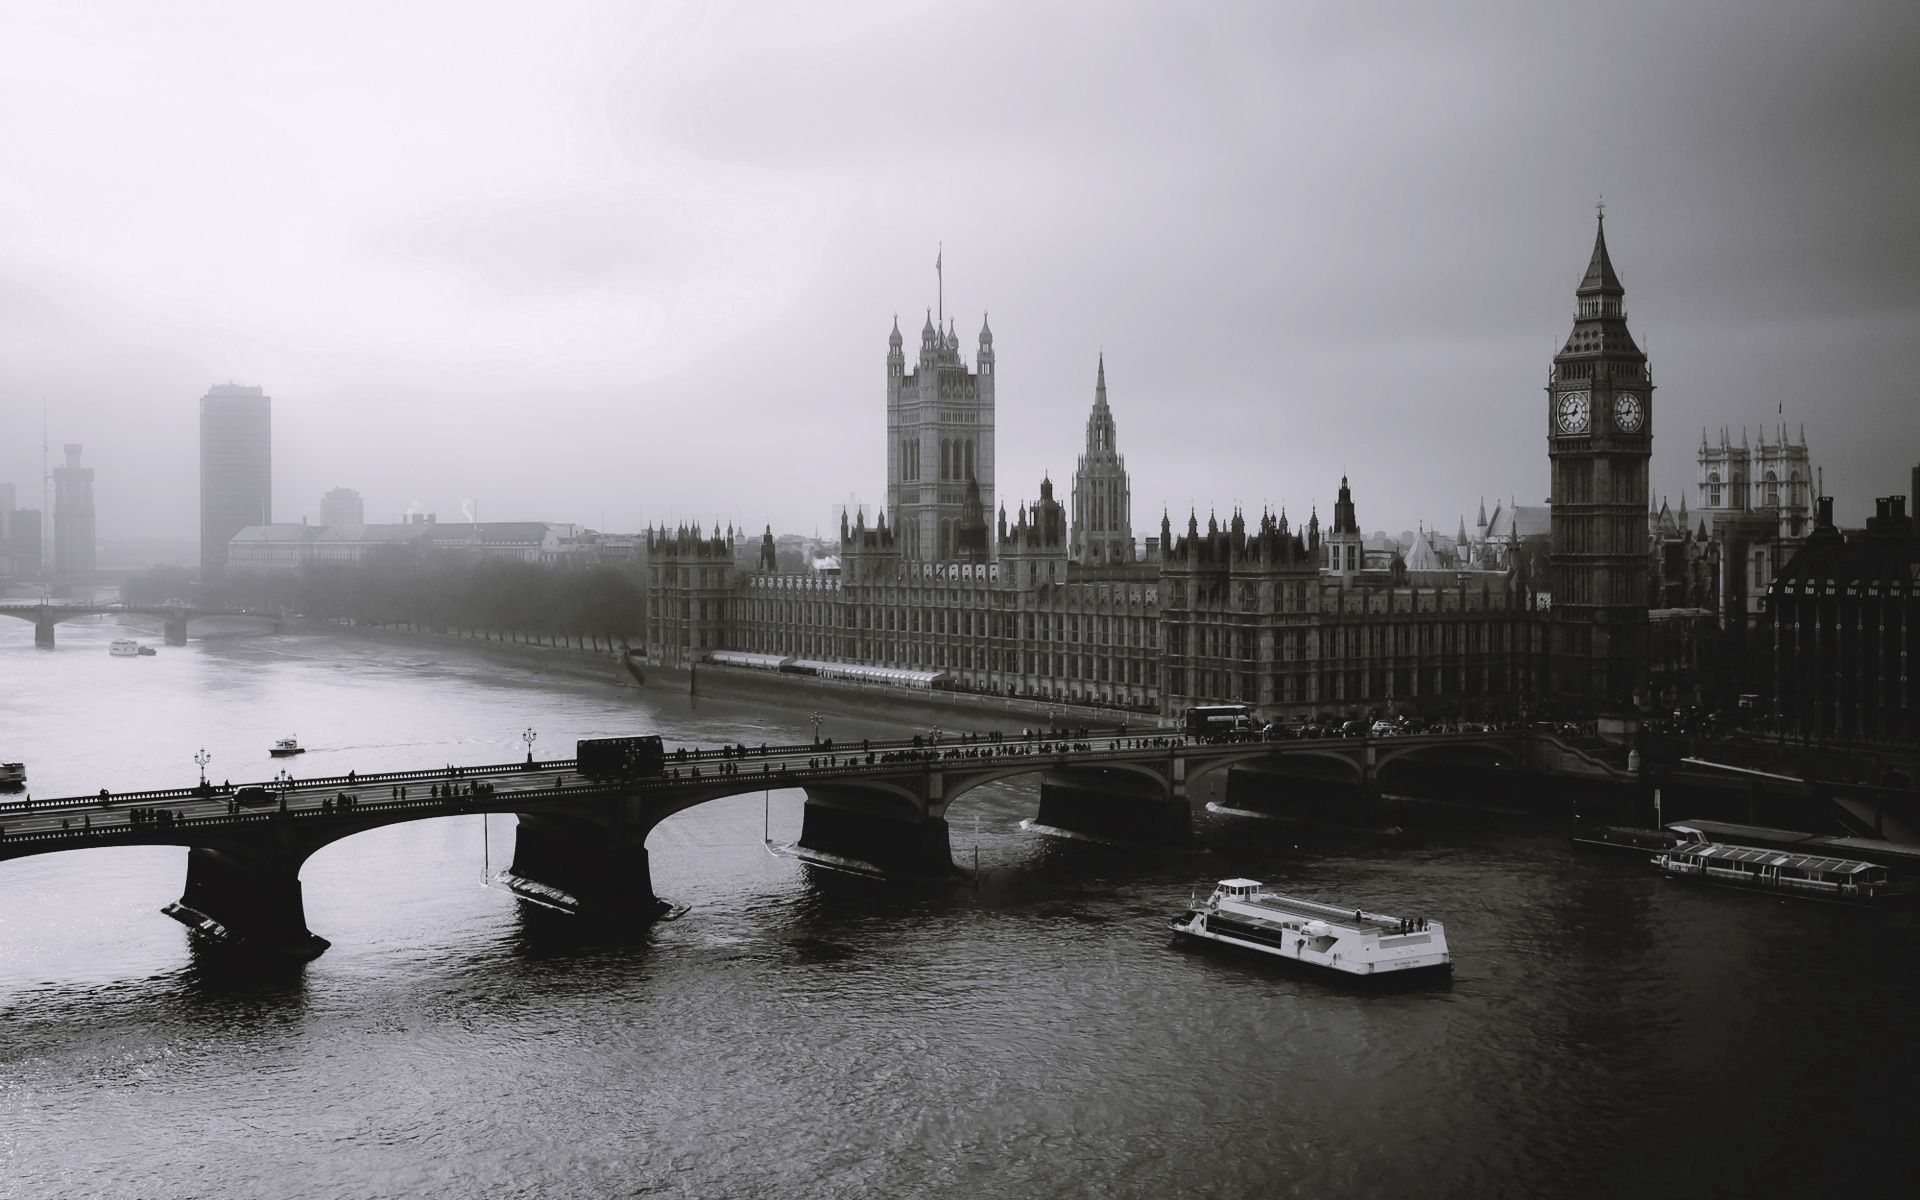 107551 download wallpaper Cities, Rivers, London, Big Ben, Fog, Bridge, Bw, Chb screensavers and pictures for free